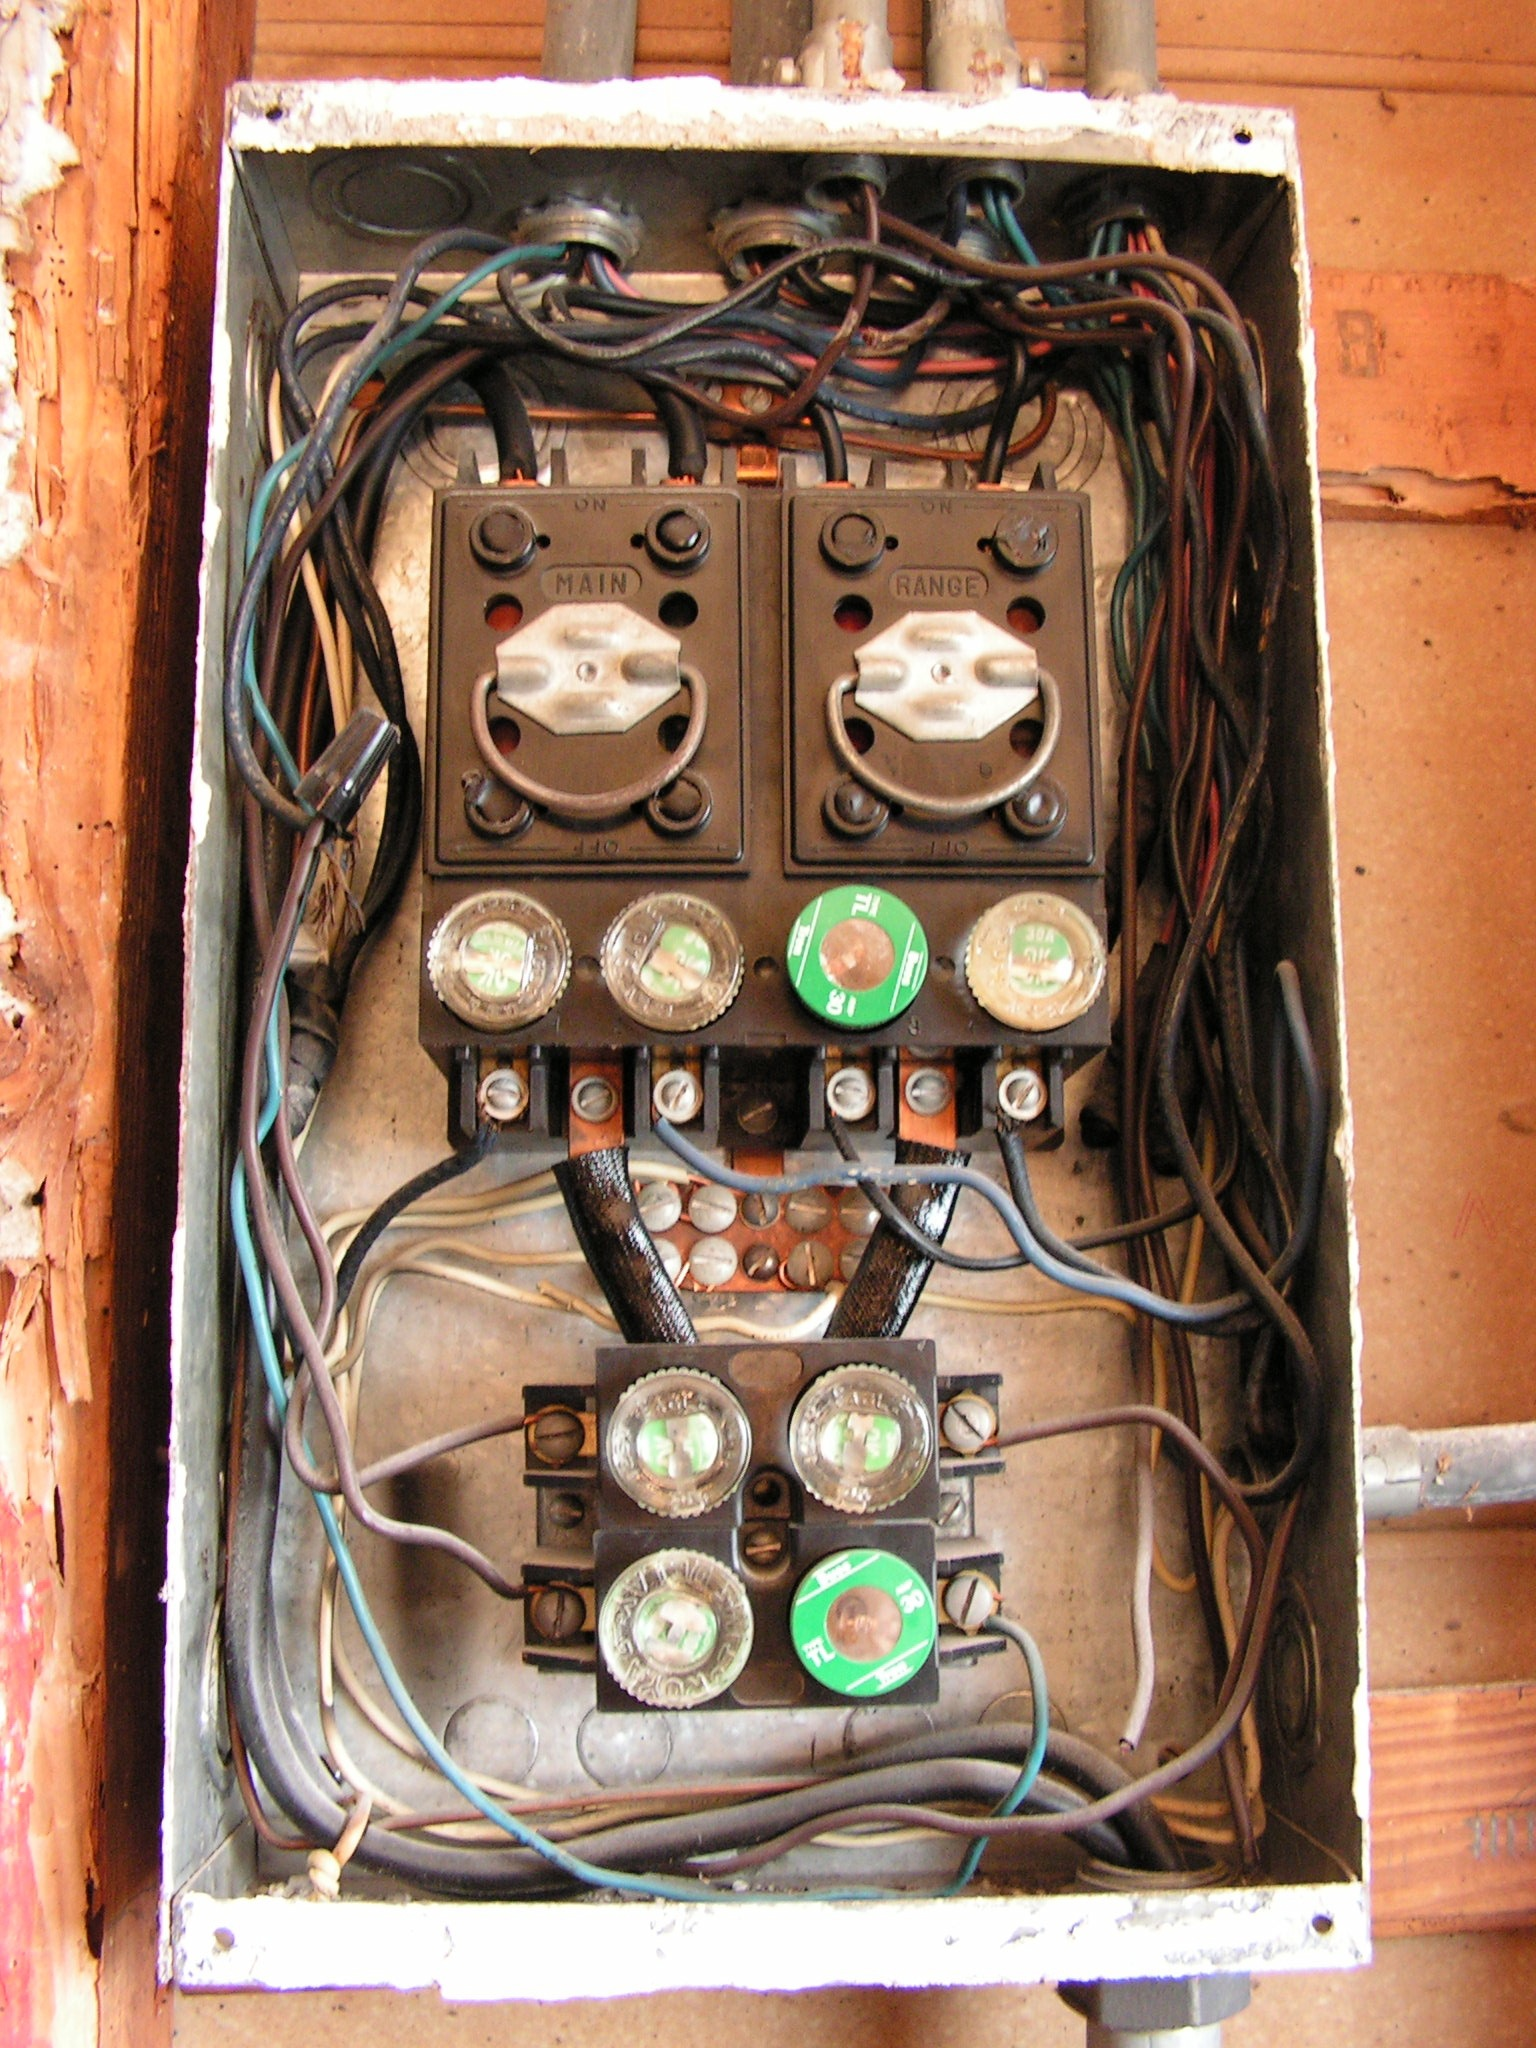 Old Round Fuses Fuse Box Great Design Of Wiring Diagram Buss 1960s I Need Advice From An Electrician Who Has Tons Experience Home